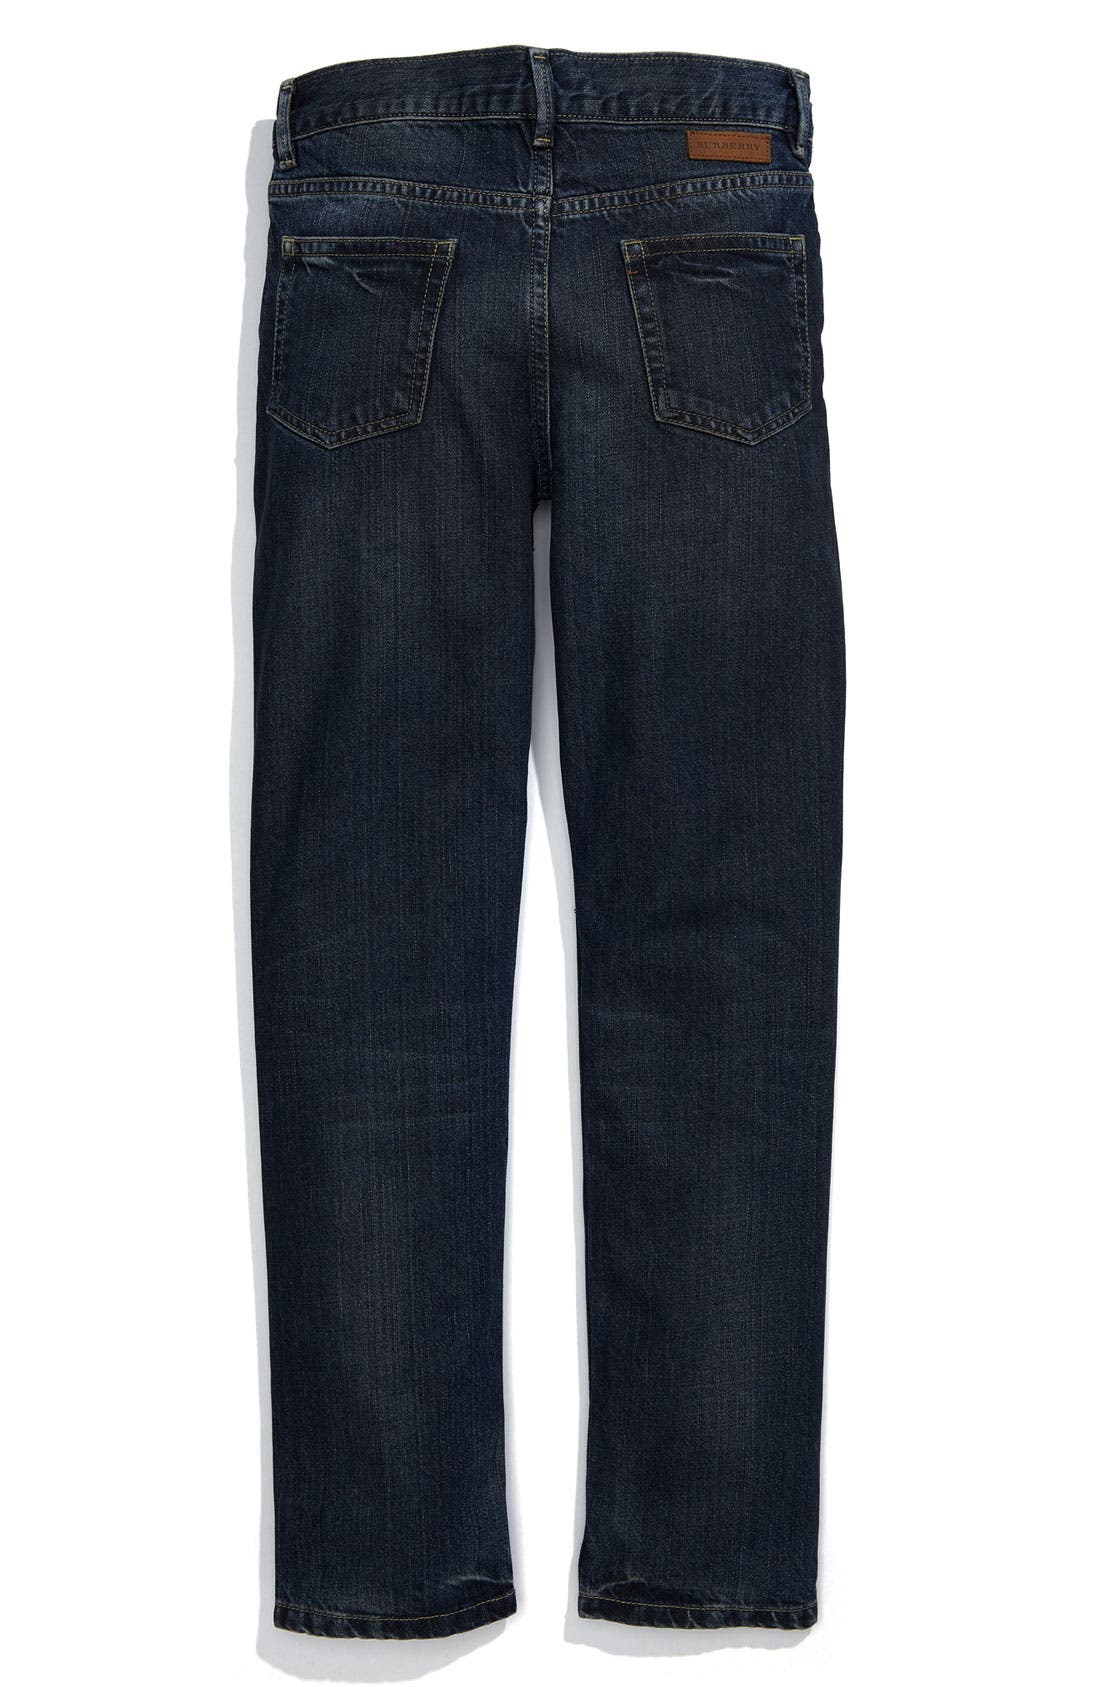 Main Image - Burberry Slim Fit Jeans (Big Boys)